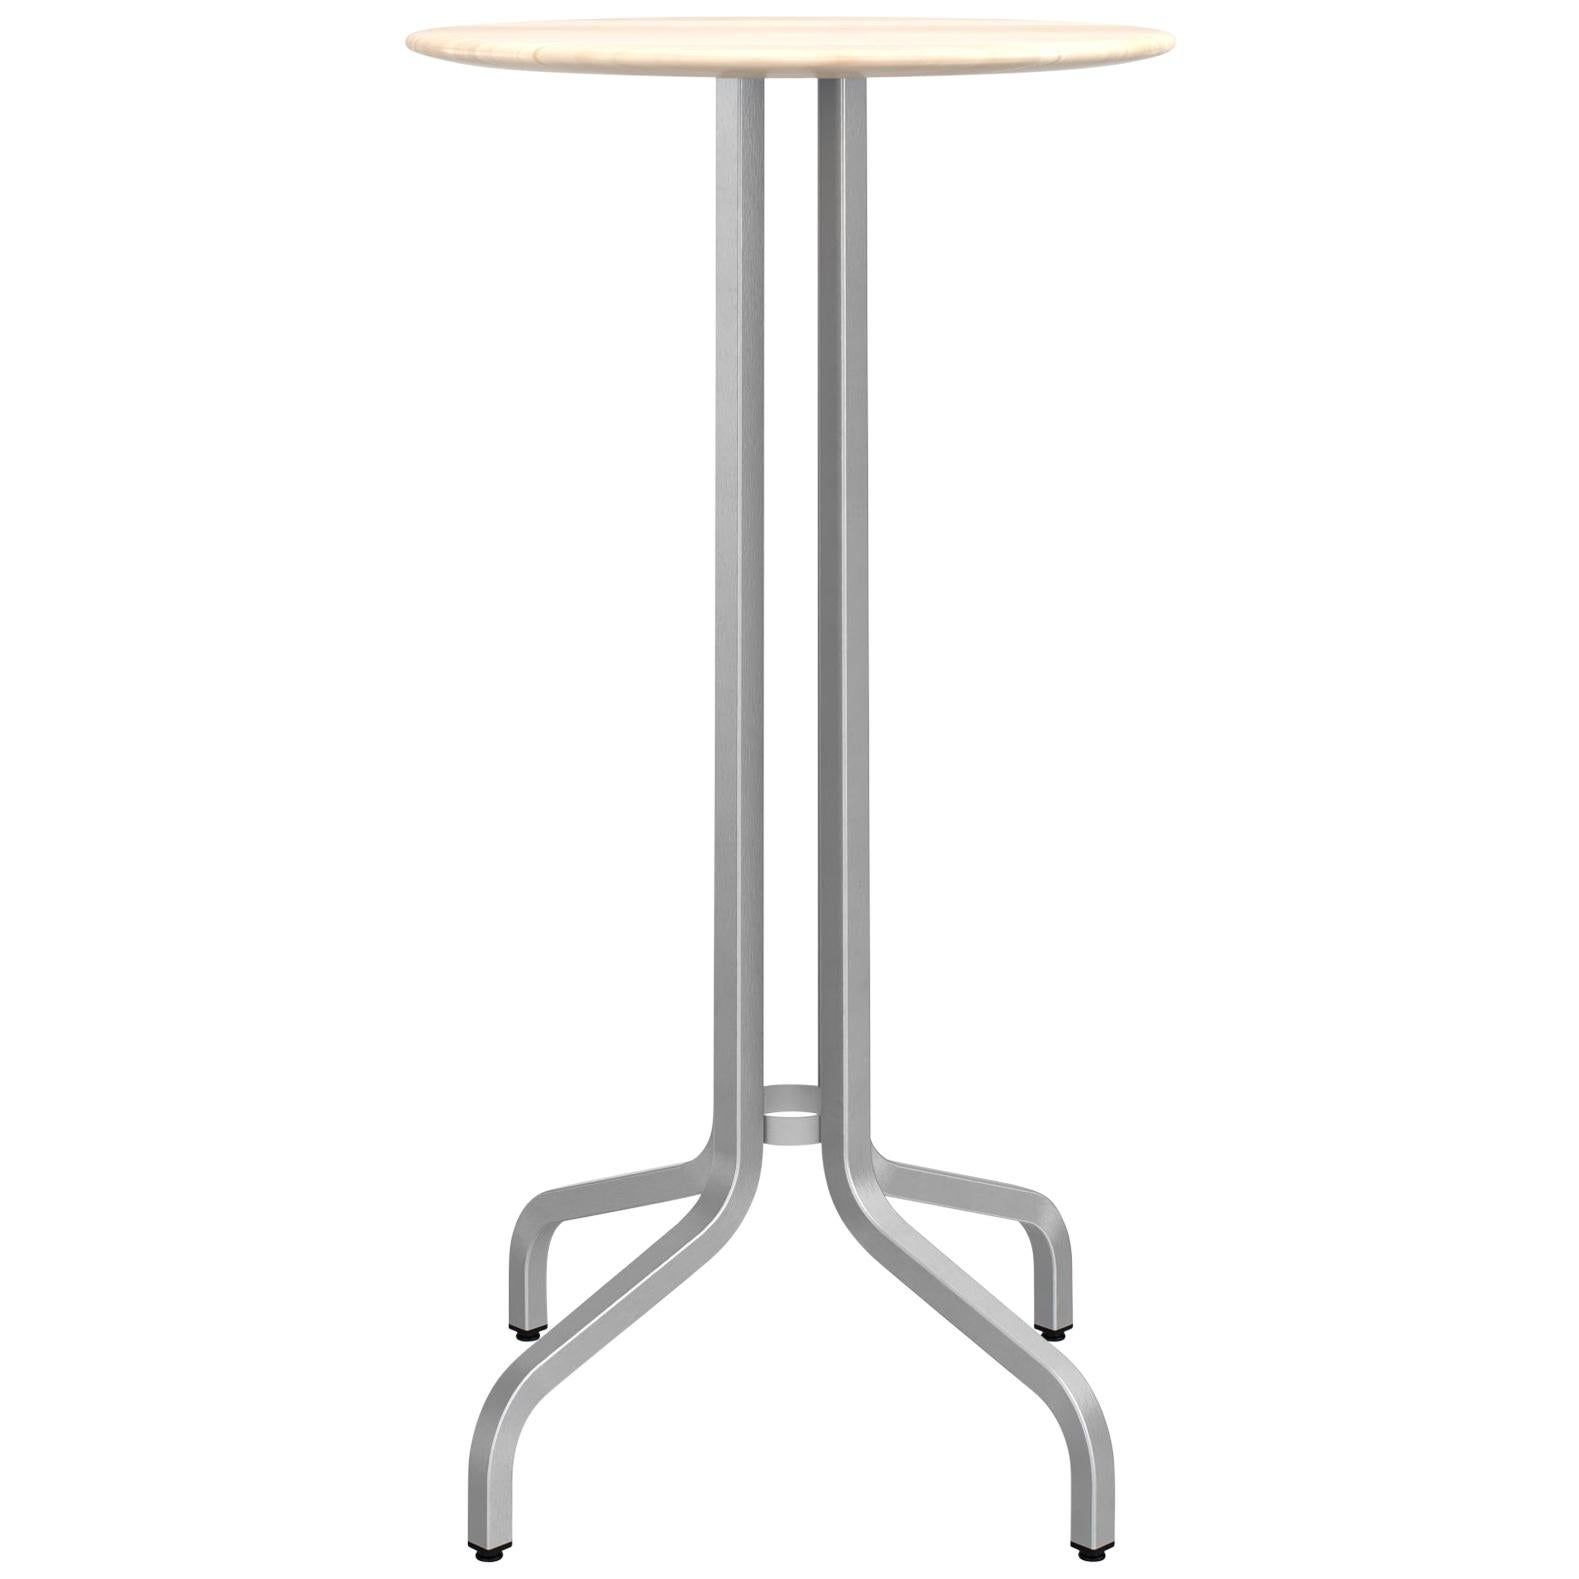 Emeco 1 Inch Small Round Bar Table with Aluminum & Wood by Jasper Morrison